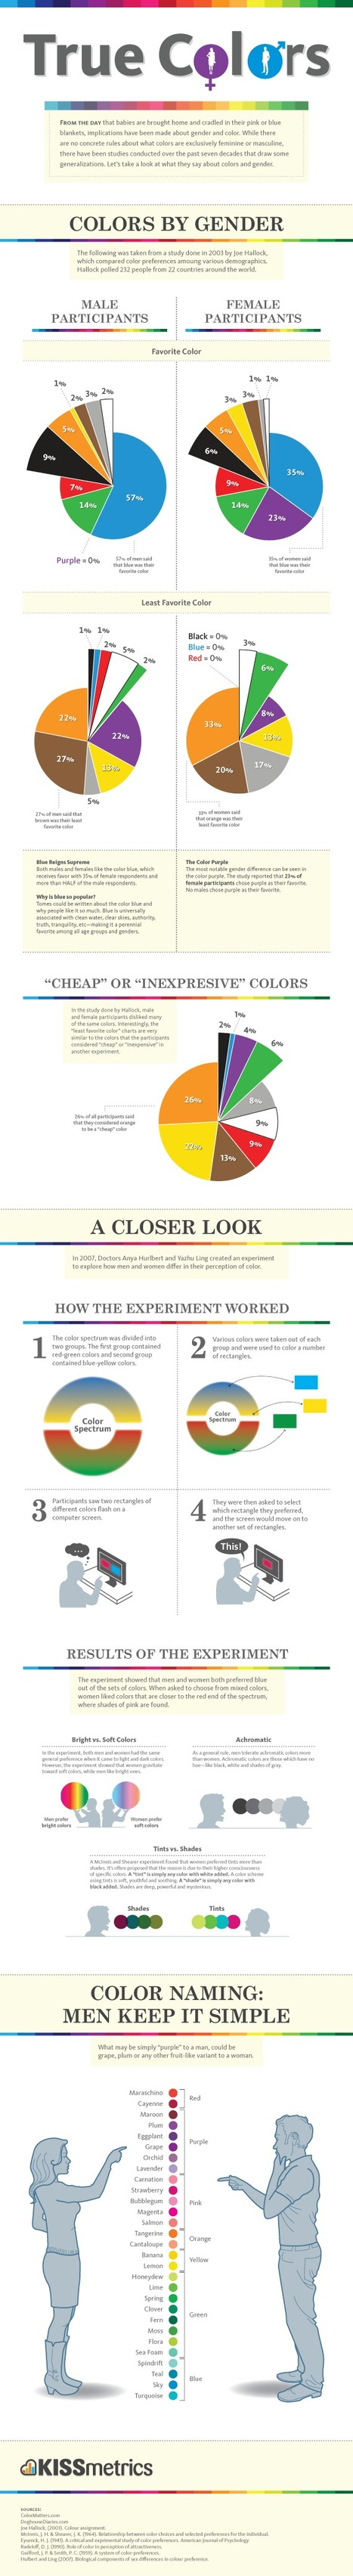 Color Is Master Of Us All: Color Preference By Gender [Infographic] | digital marketing strategy | Scoop.it